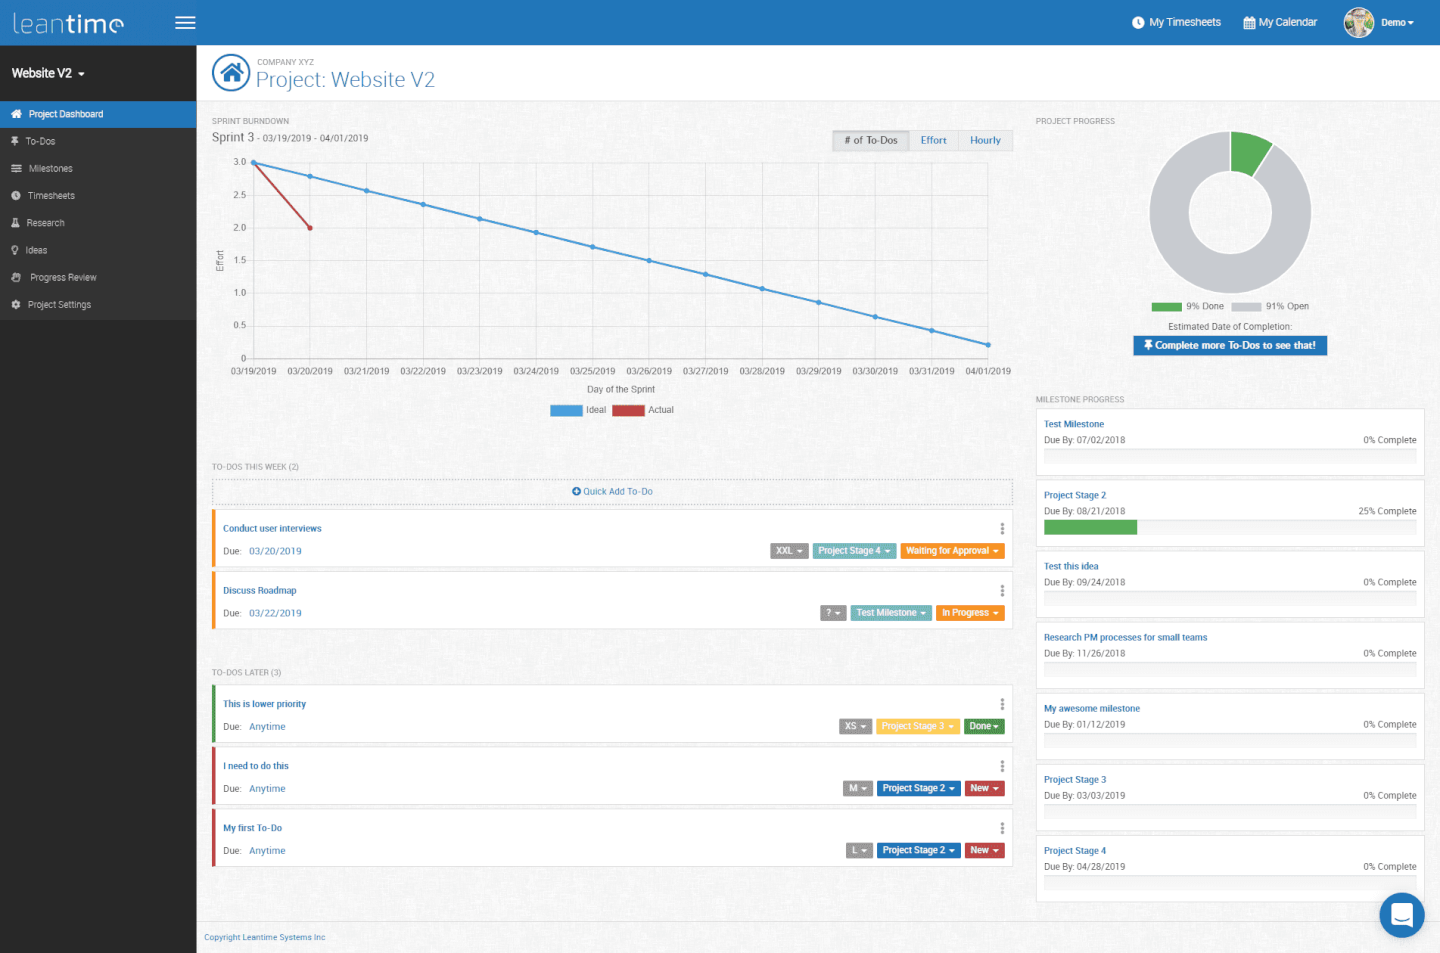 leantime-projectmanagement-software-tool-screenshot-Dashboard